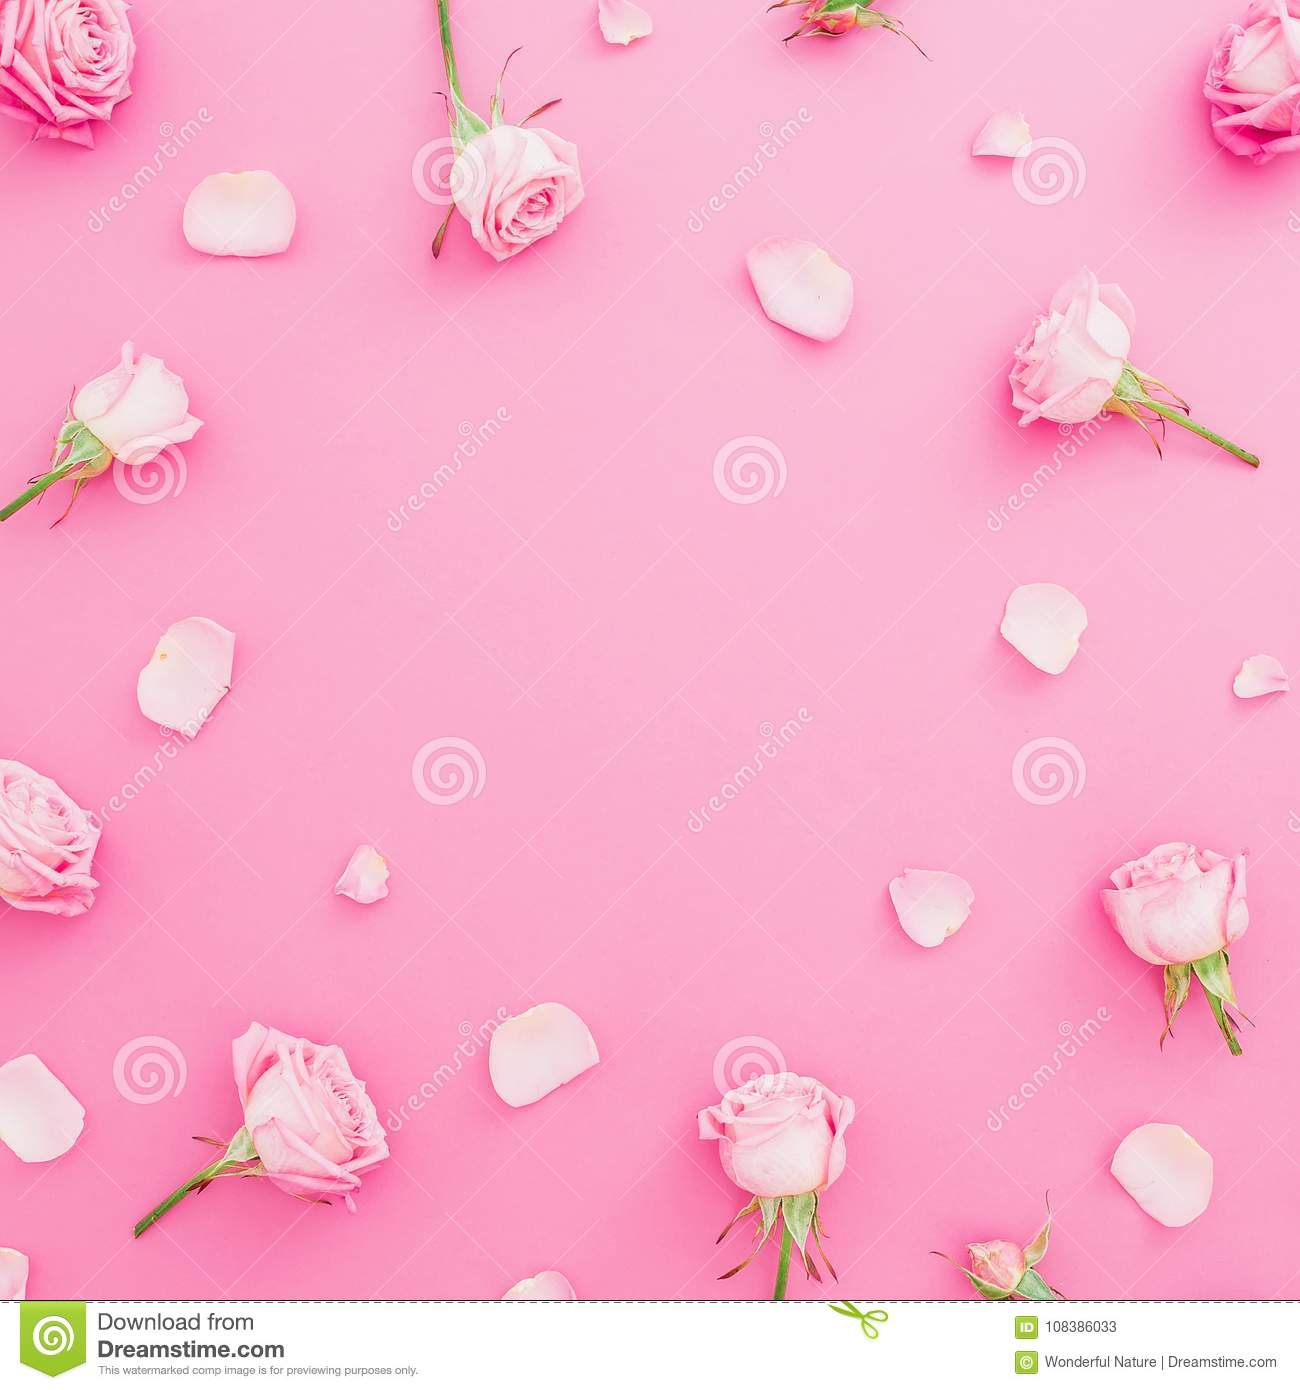 Floral round frame with roses flowers and petals on pastel pink background. Flat lay, Top view. Valentines background